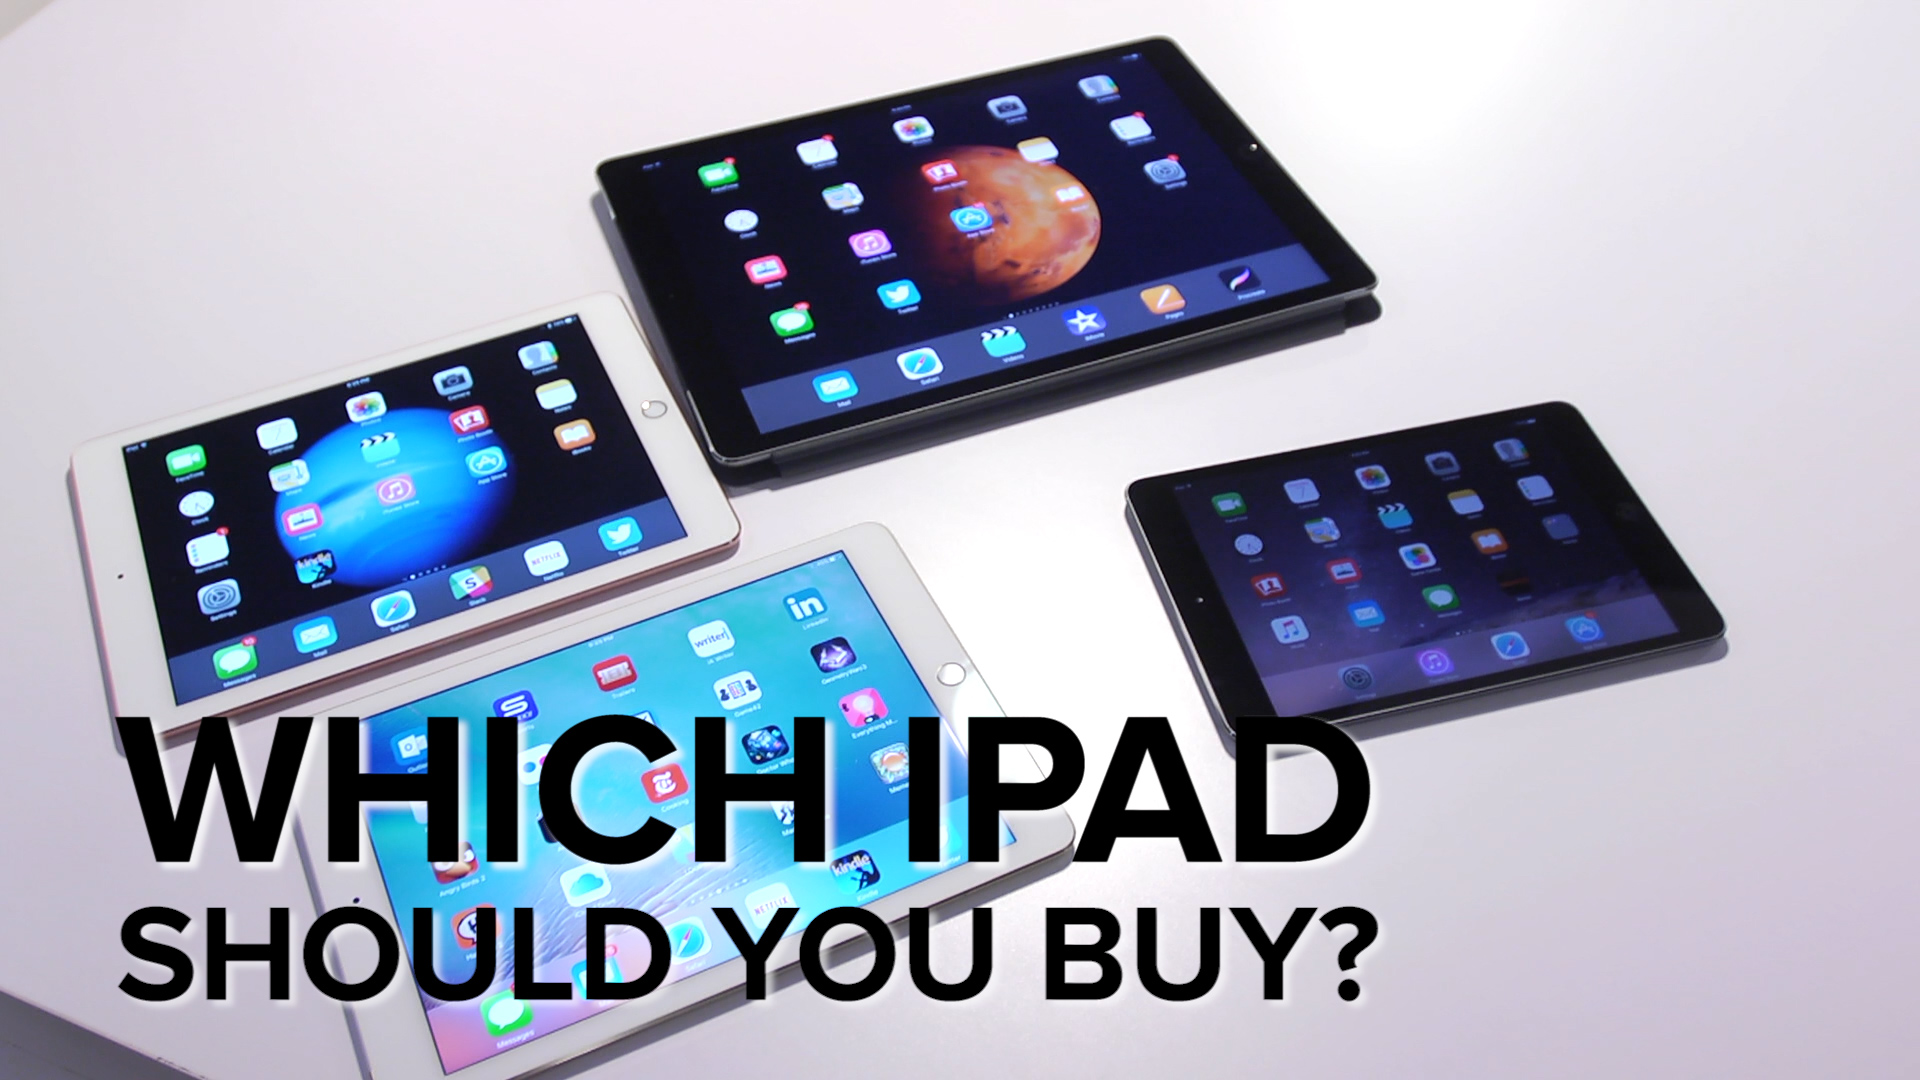 Video: How to choose your next iPad